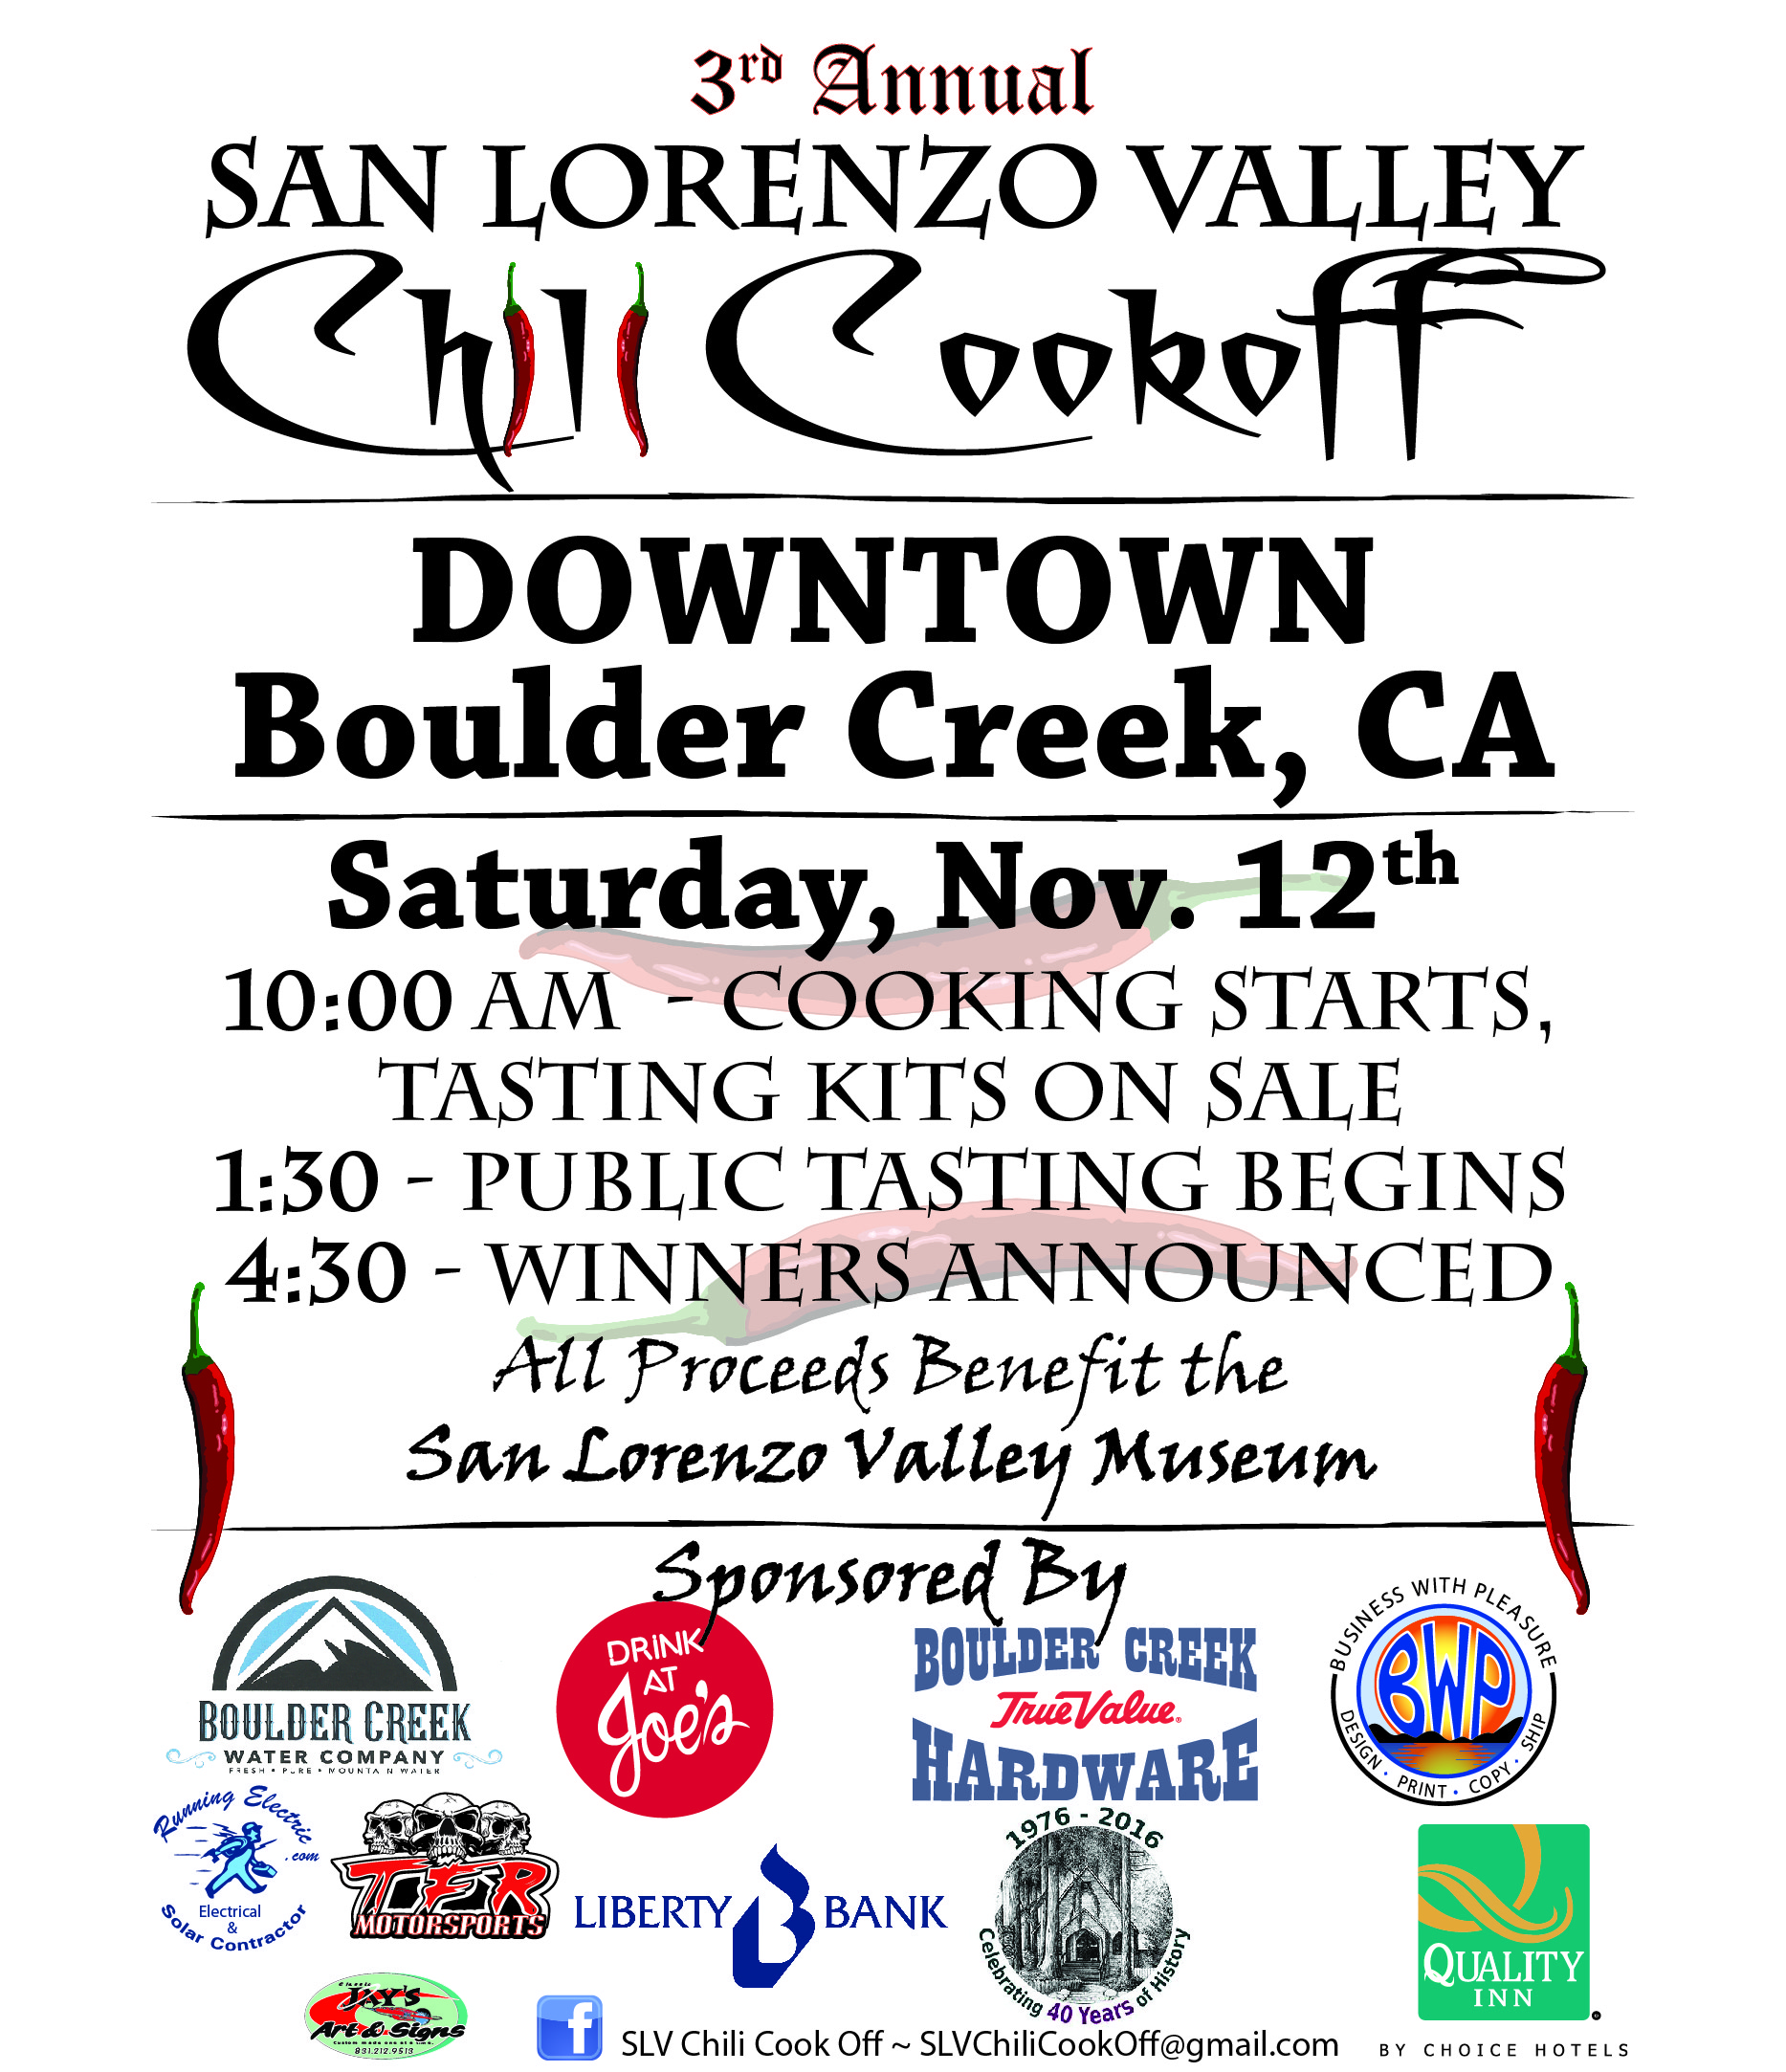 3rd Chili Cookoff flyer